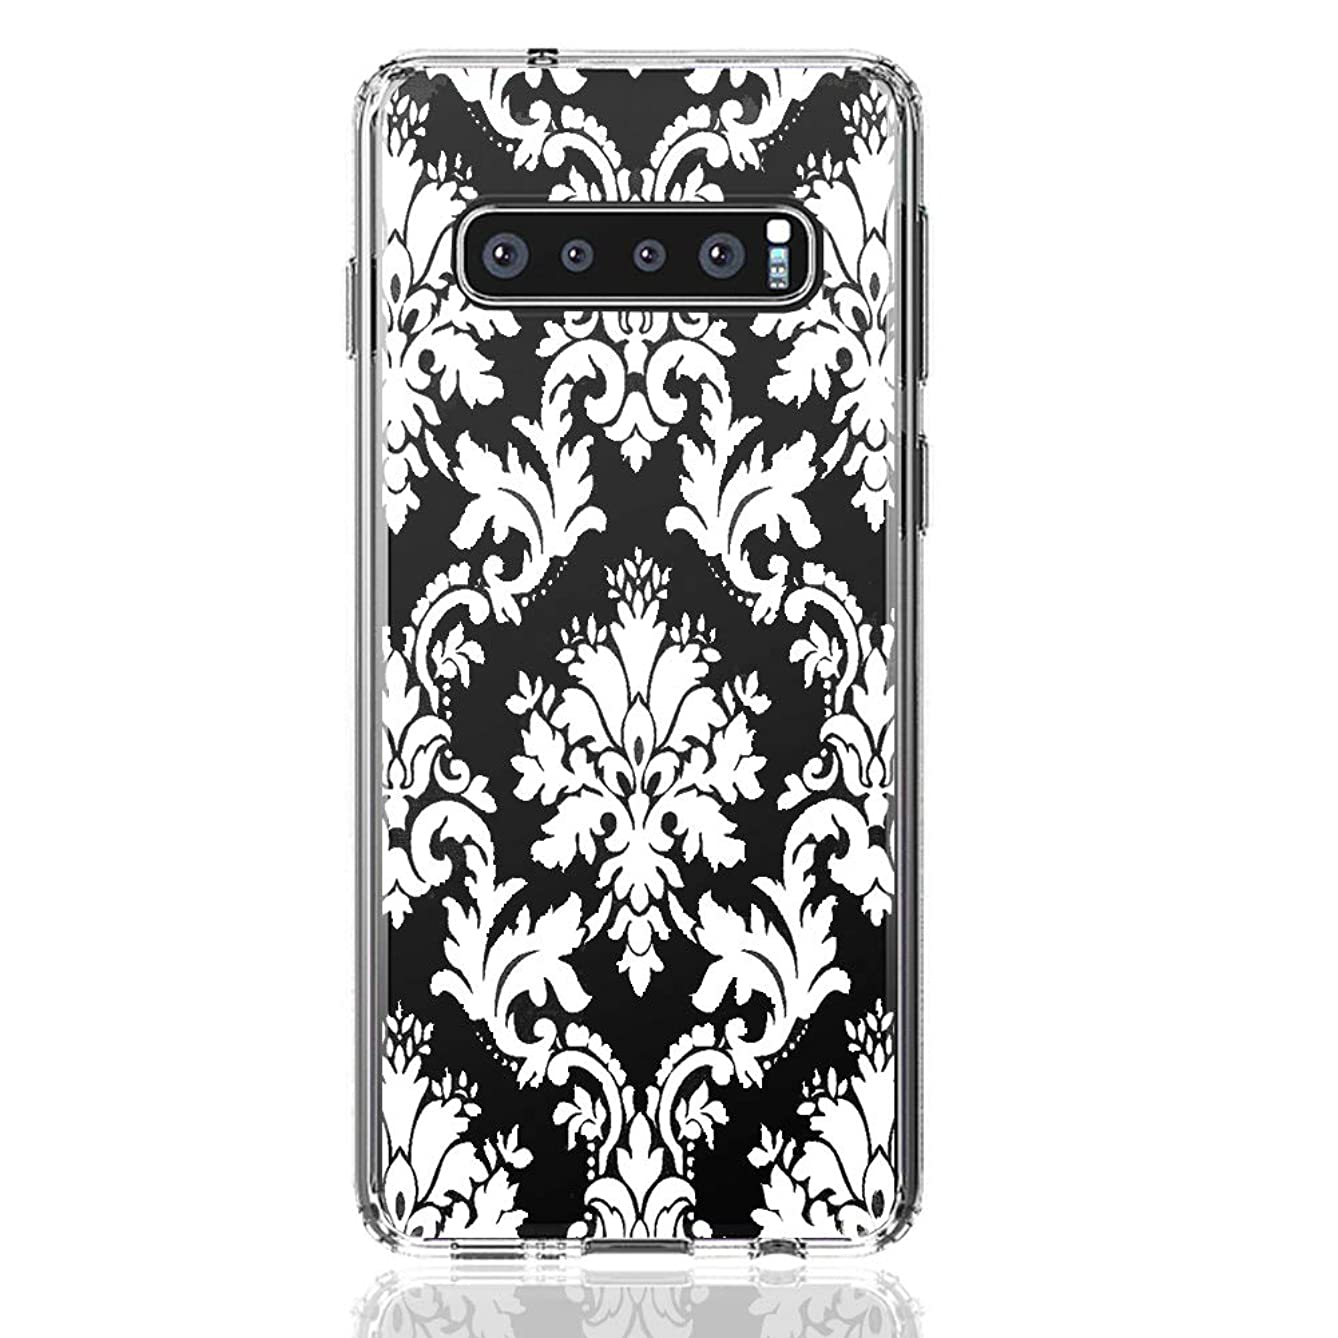 HUIYCUU Case Compatible with Galaxy S10 Plus Case, Shockproof Cute Clear Design Flower Pattern Slim Fit Soft Bumper Back Cover for Girl Women Shell for Samsung S10 Plus, White Mandala